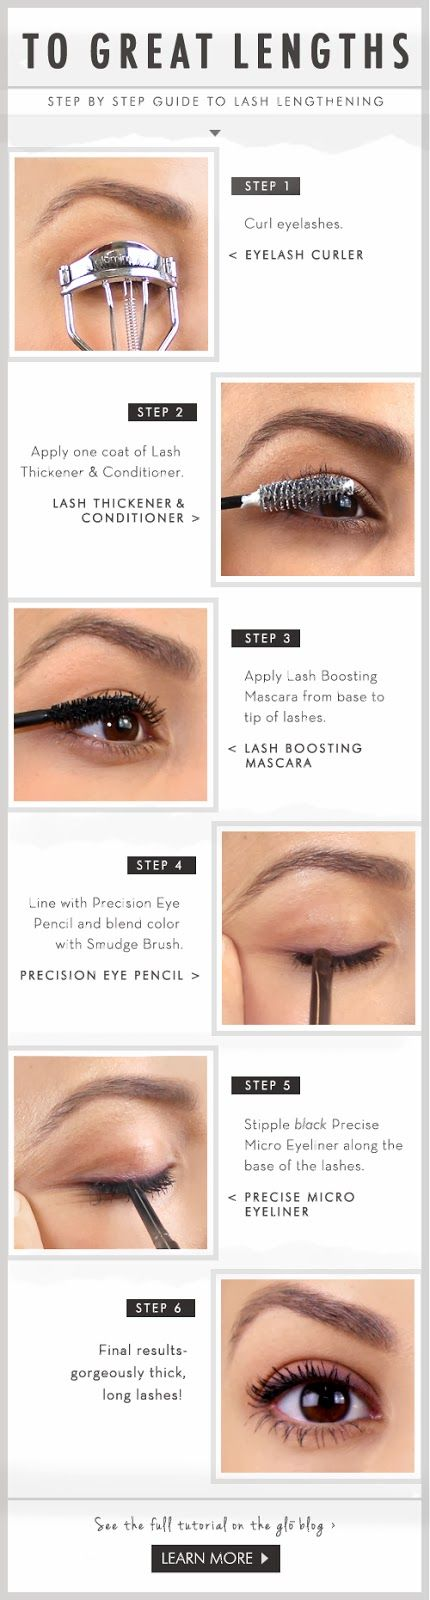 TO GREAT LENGTHS | Step By Step Guide to Lash Lengthening.